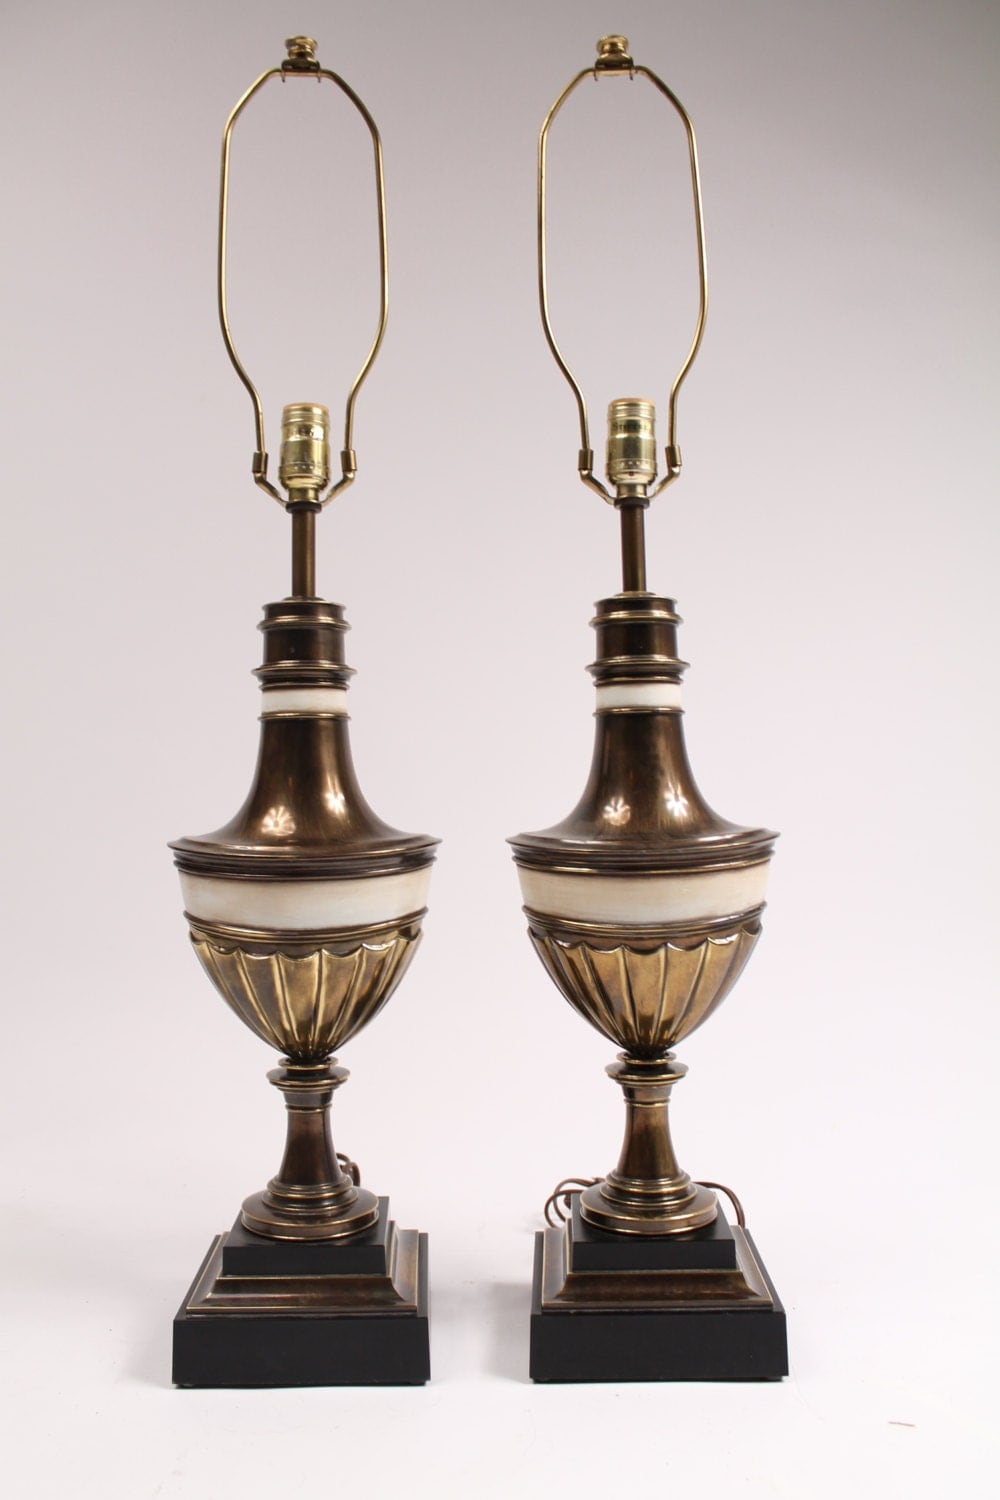 2 Stiffel Table Lamps 36 In Tall Prime Quality Brass